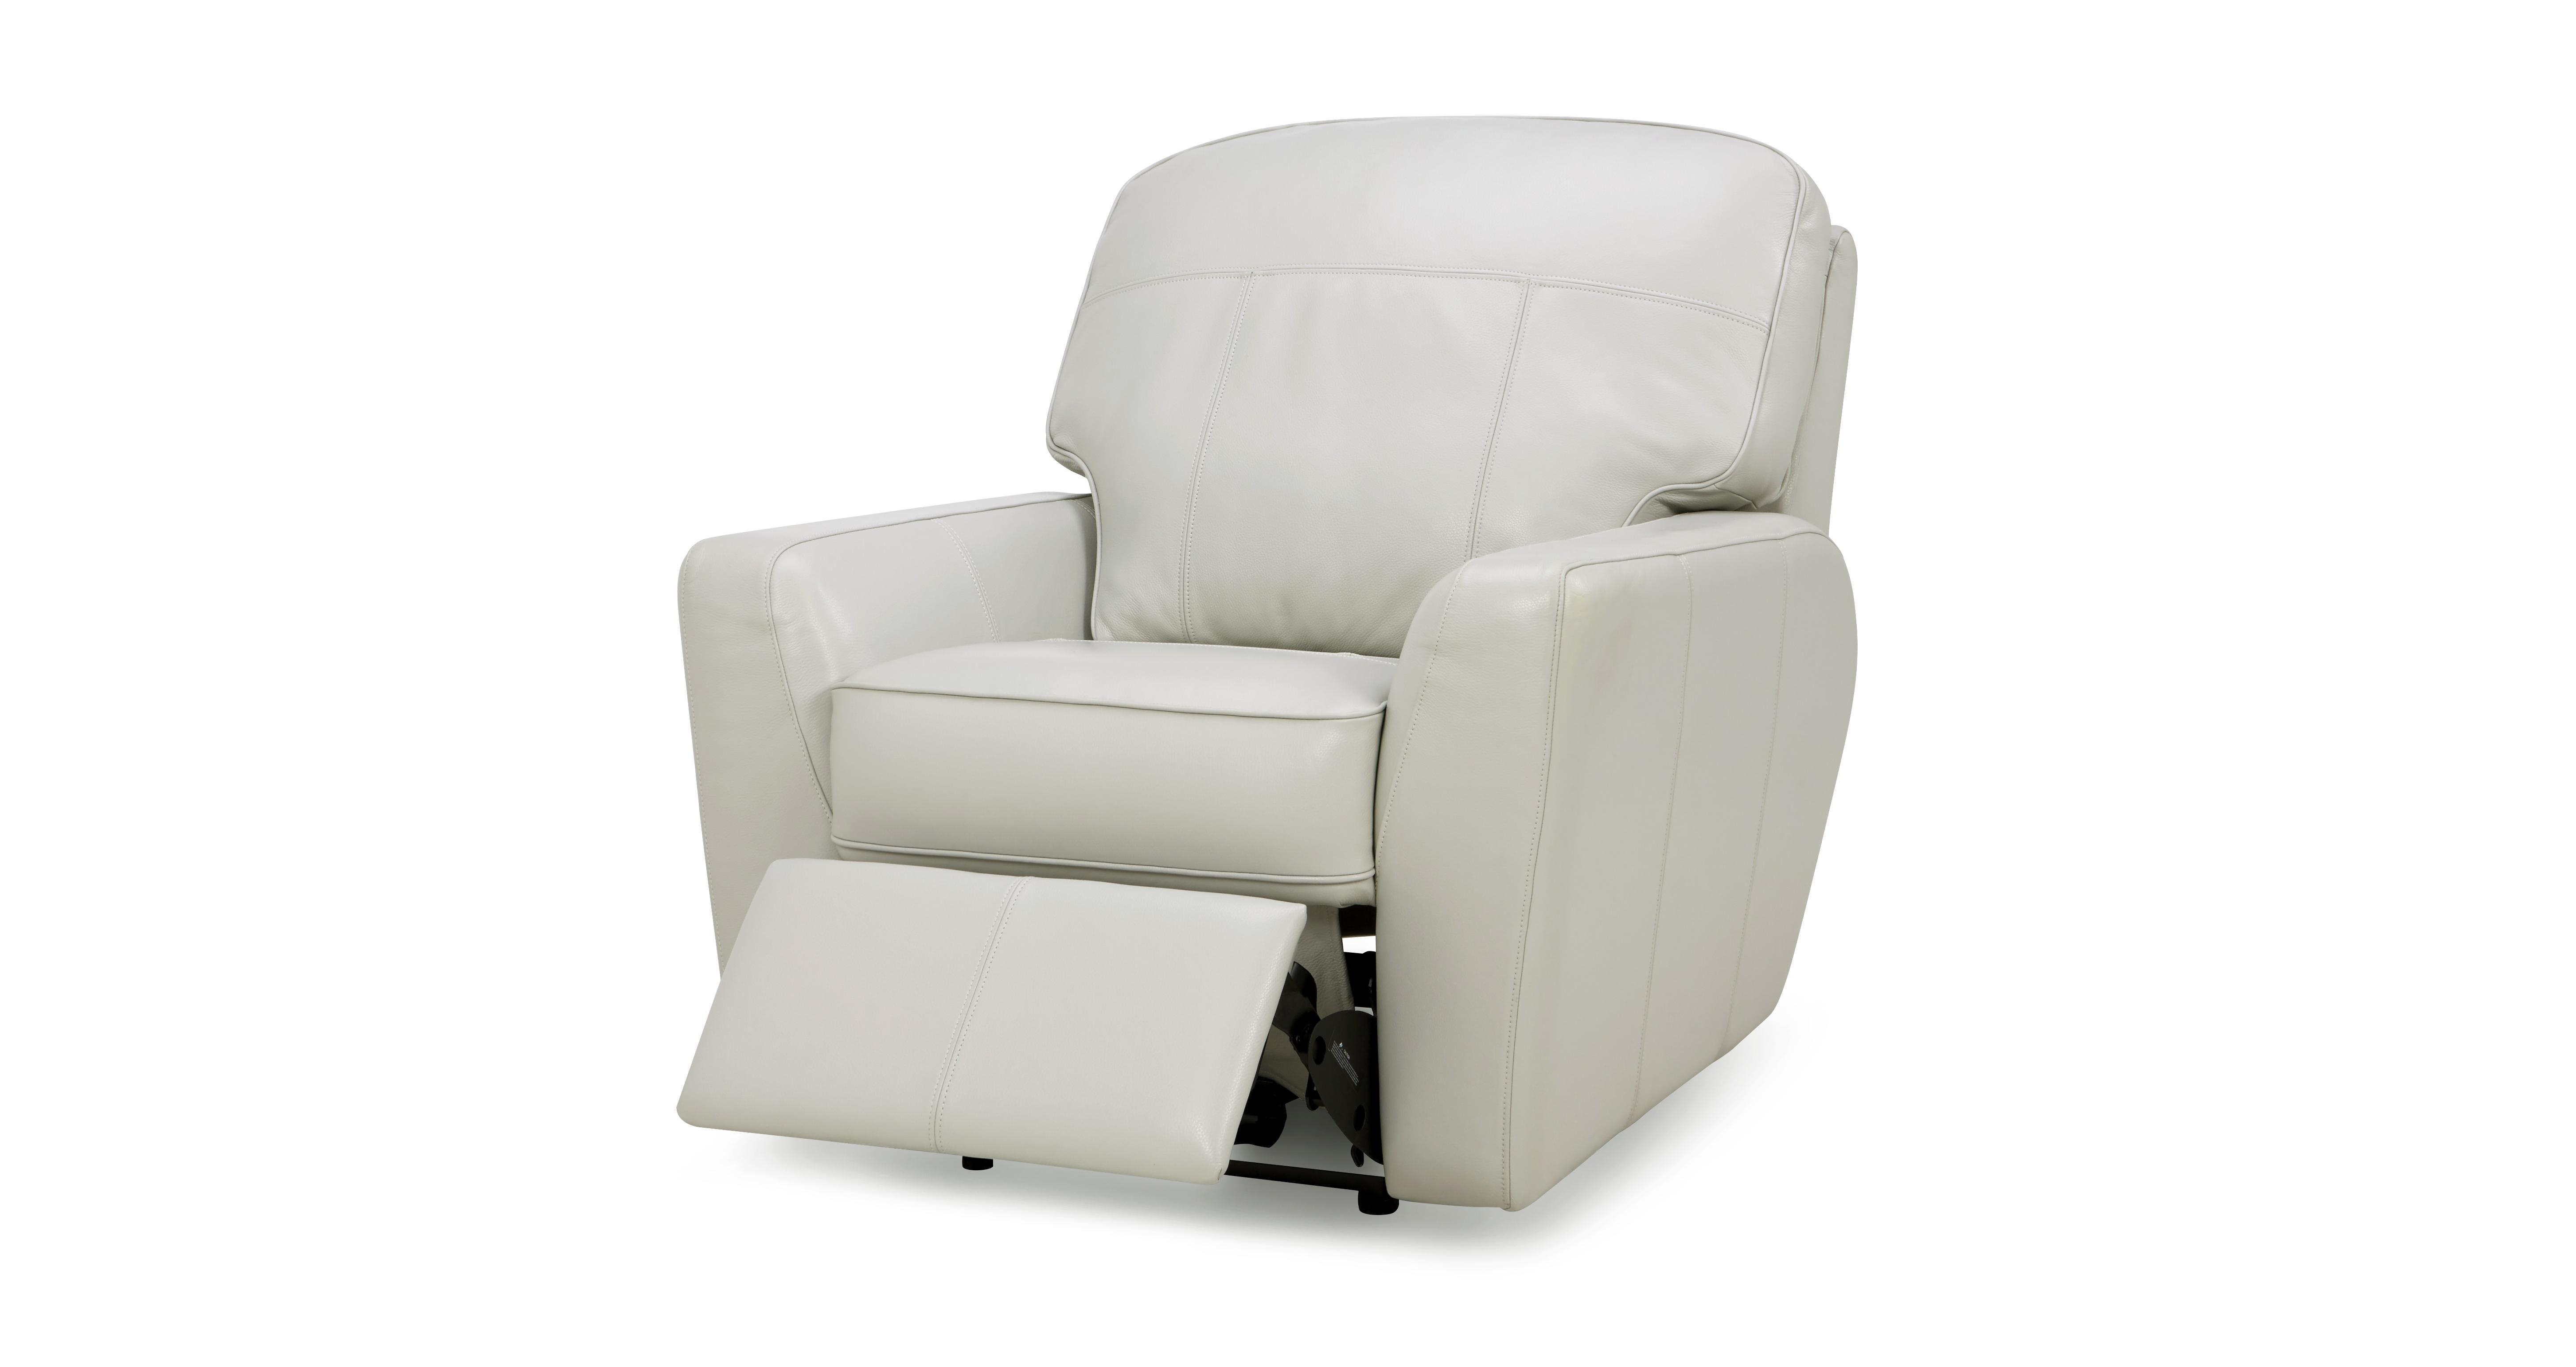 sophia leather manual recliner chair dfs ireland